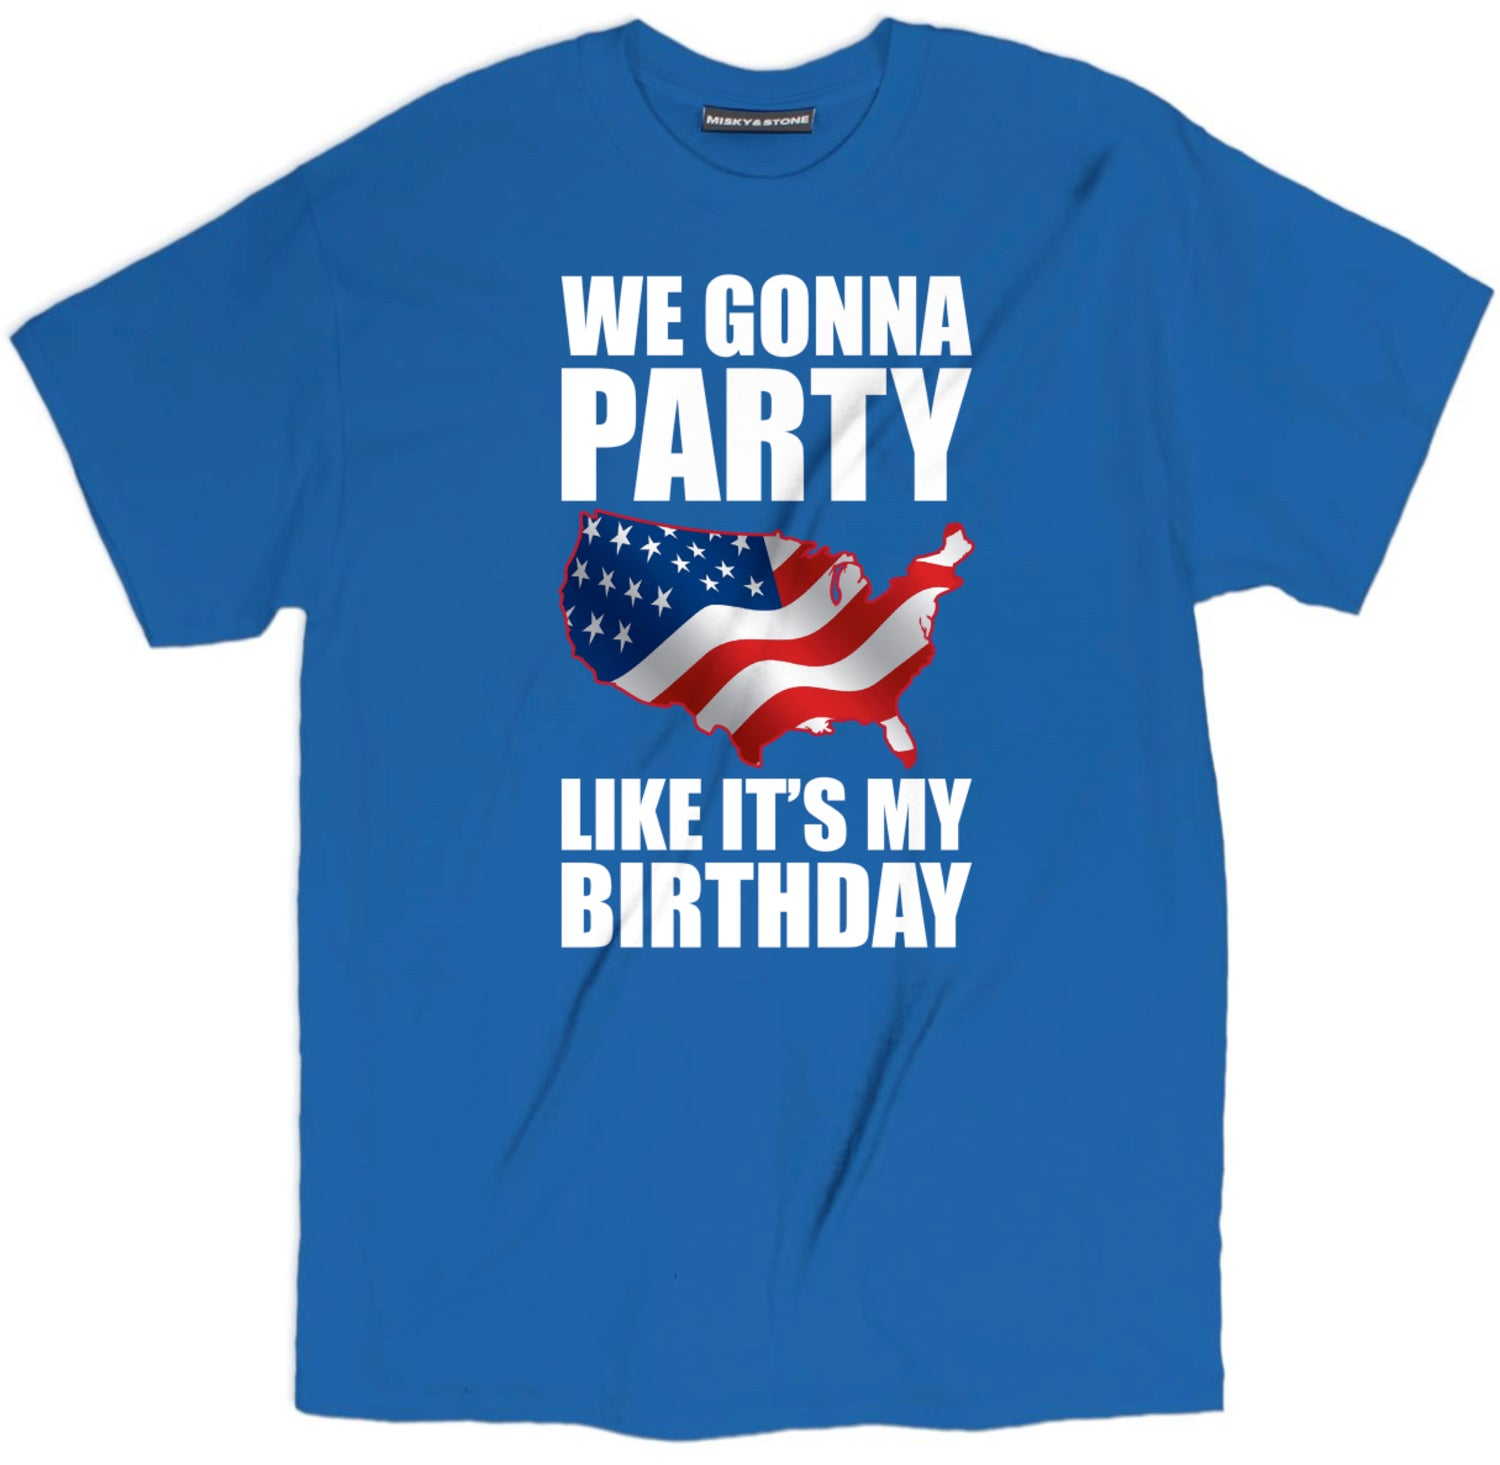 we gonna party like its my birthday t shirt, 4th of july tees, fourth of july shirts, 4th of july shirts, 4th of july t shirts, funny 4th of july shirts, funny america shirts, patriotic shirts, patriotic t shirts, american flag shirt, funny patriotic shirts, american shirts,